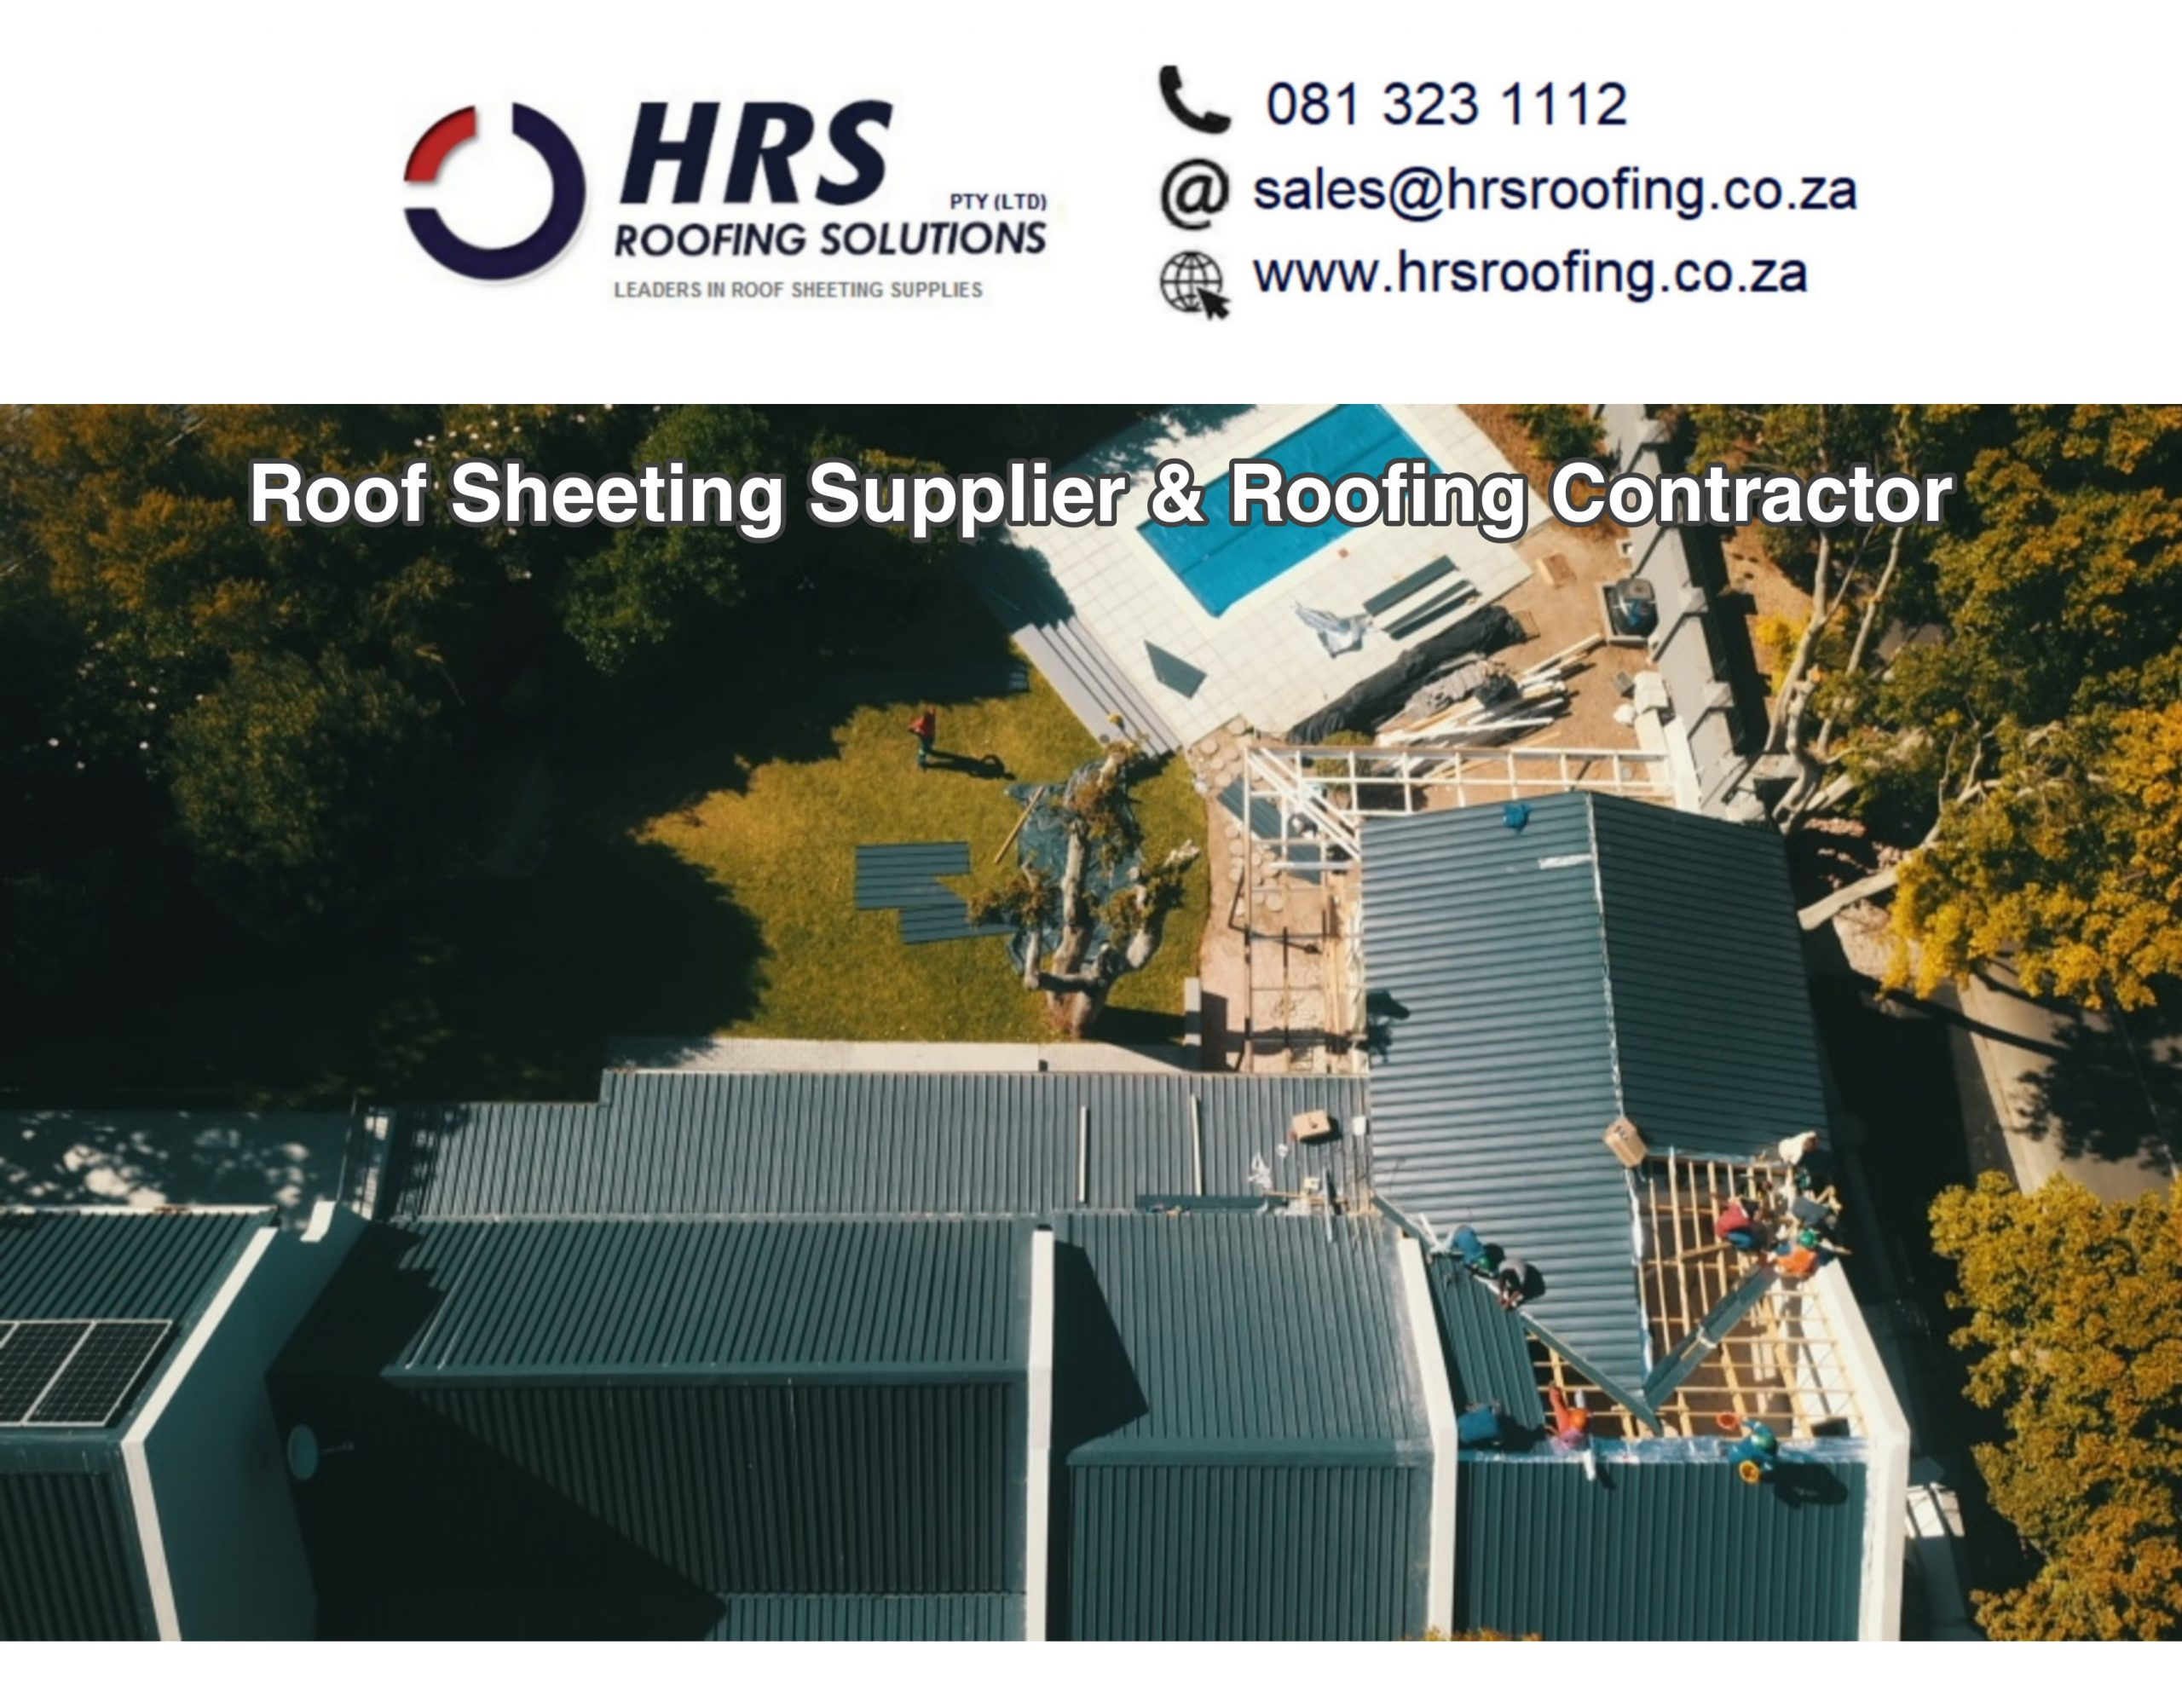 ibr corrugated springlok 700 clip lock colorbond roof sheeting supplier cape Town scaled - Roofing Gallery